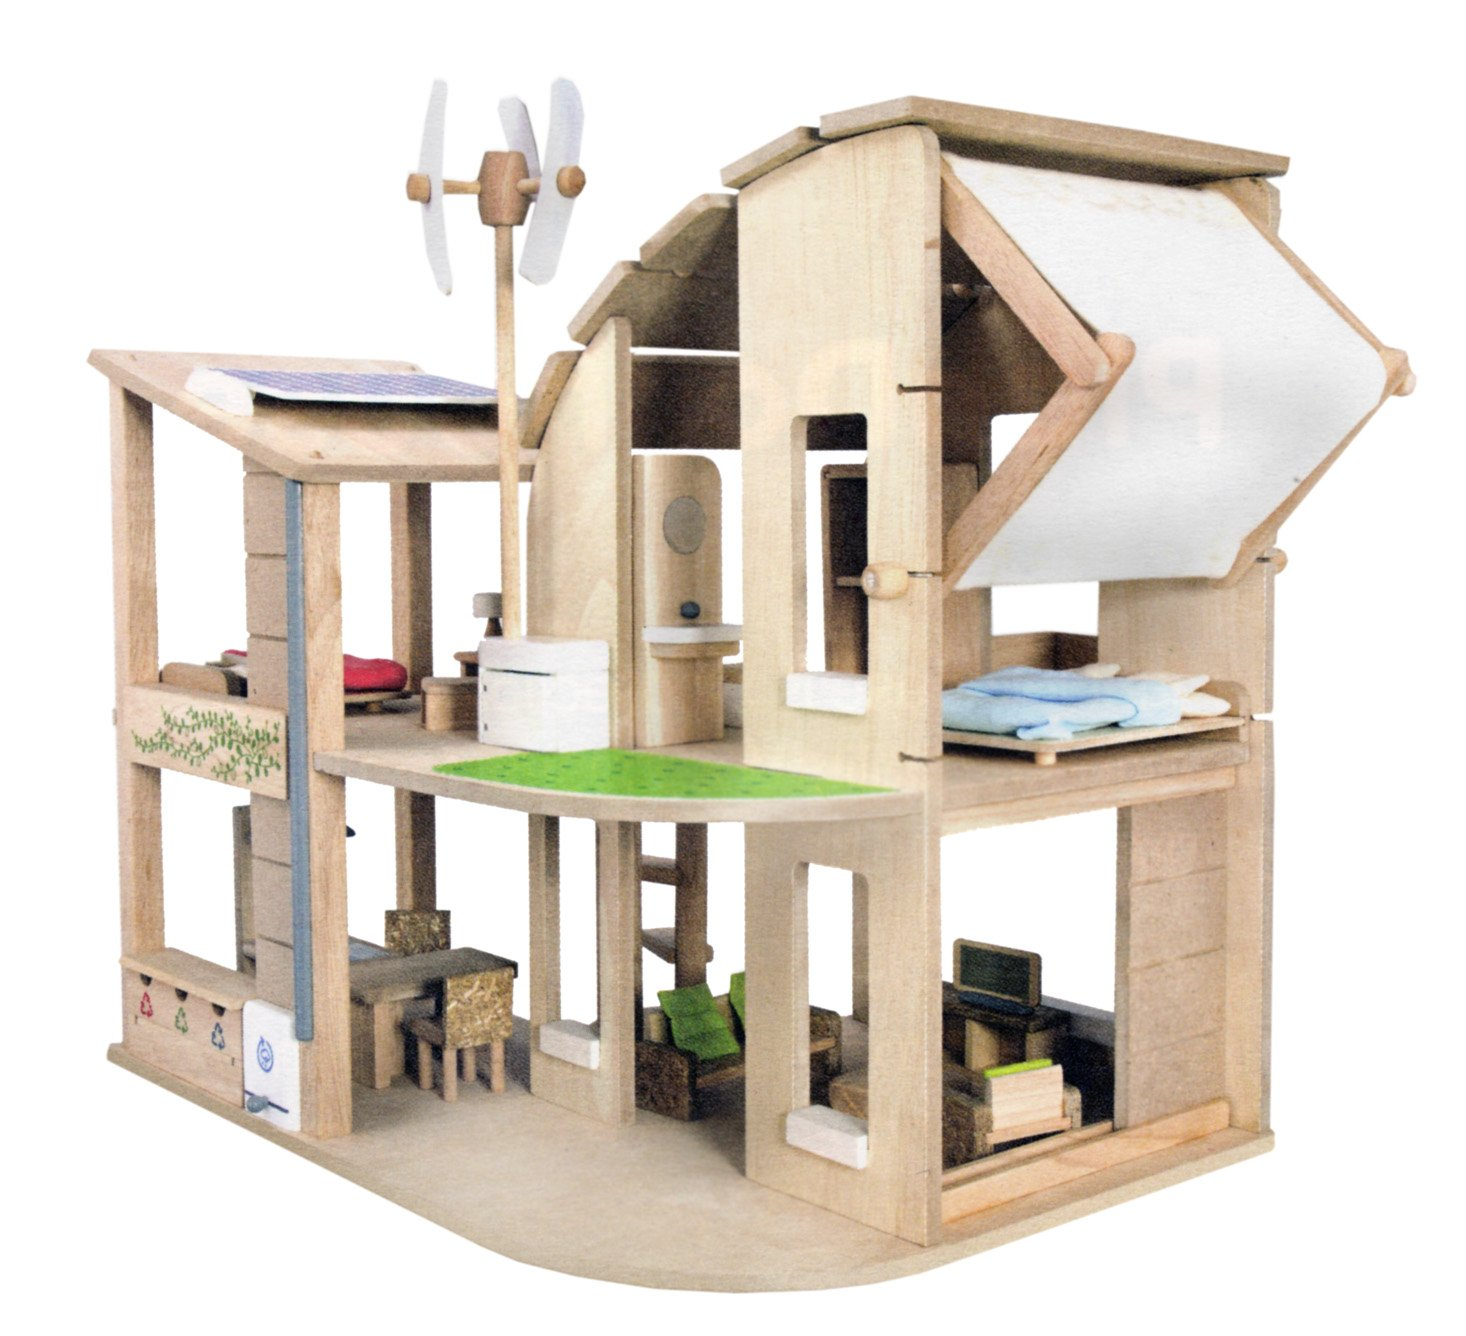 Amazoncom Plan Toys The Green Dollhouse with Furniture plan